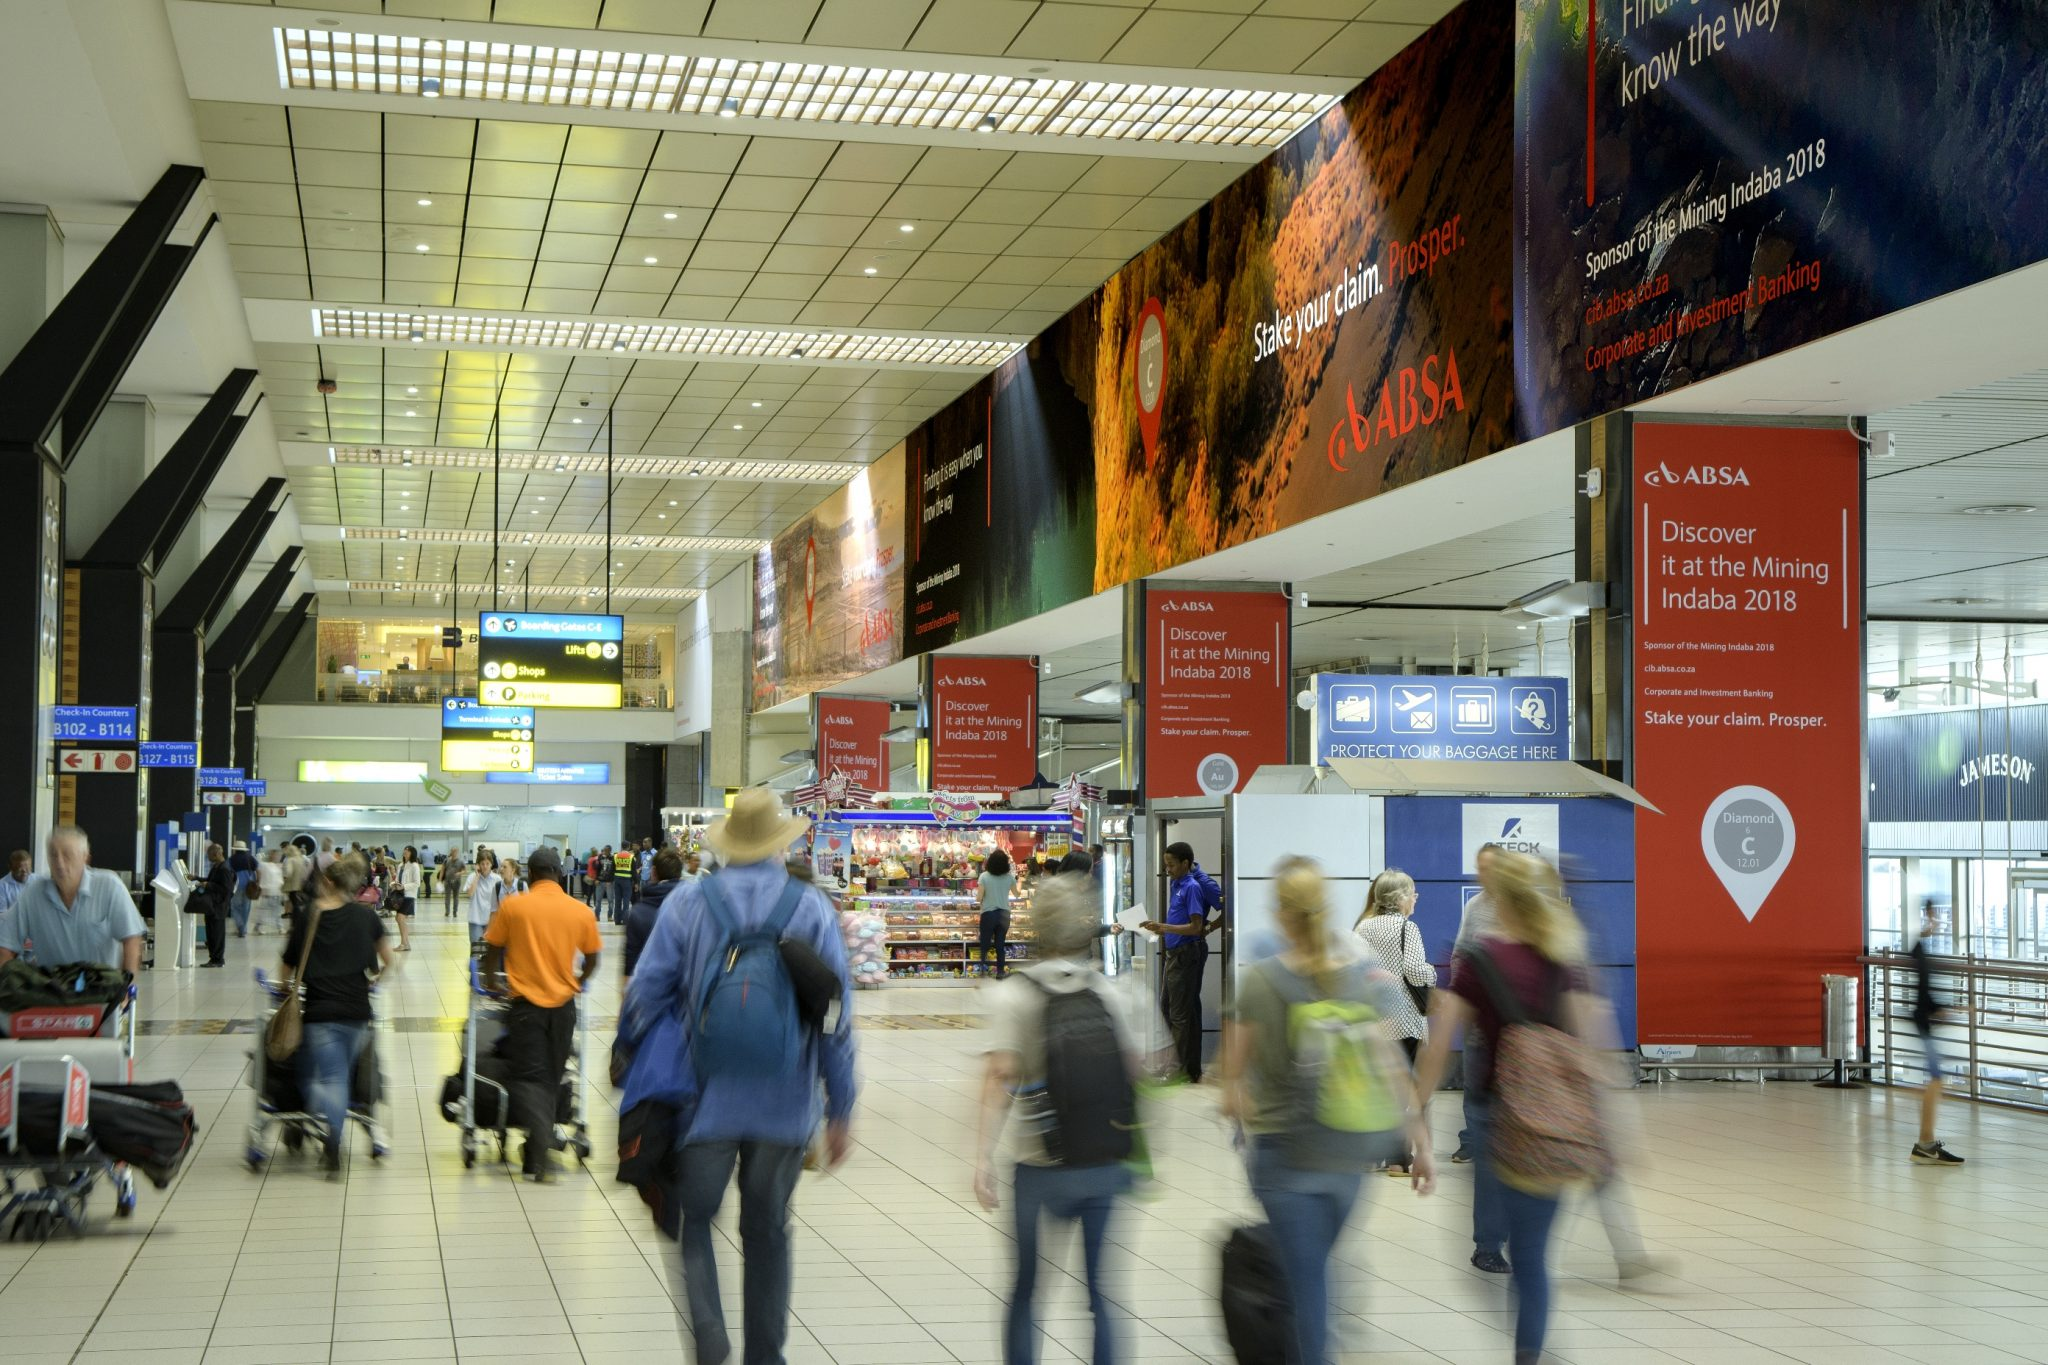 Airport Ads ABSA campaign OR Tambo